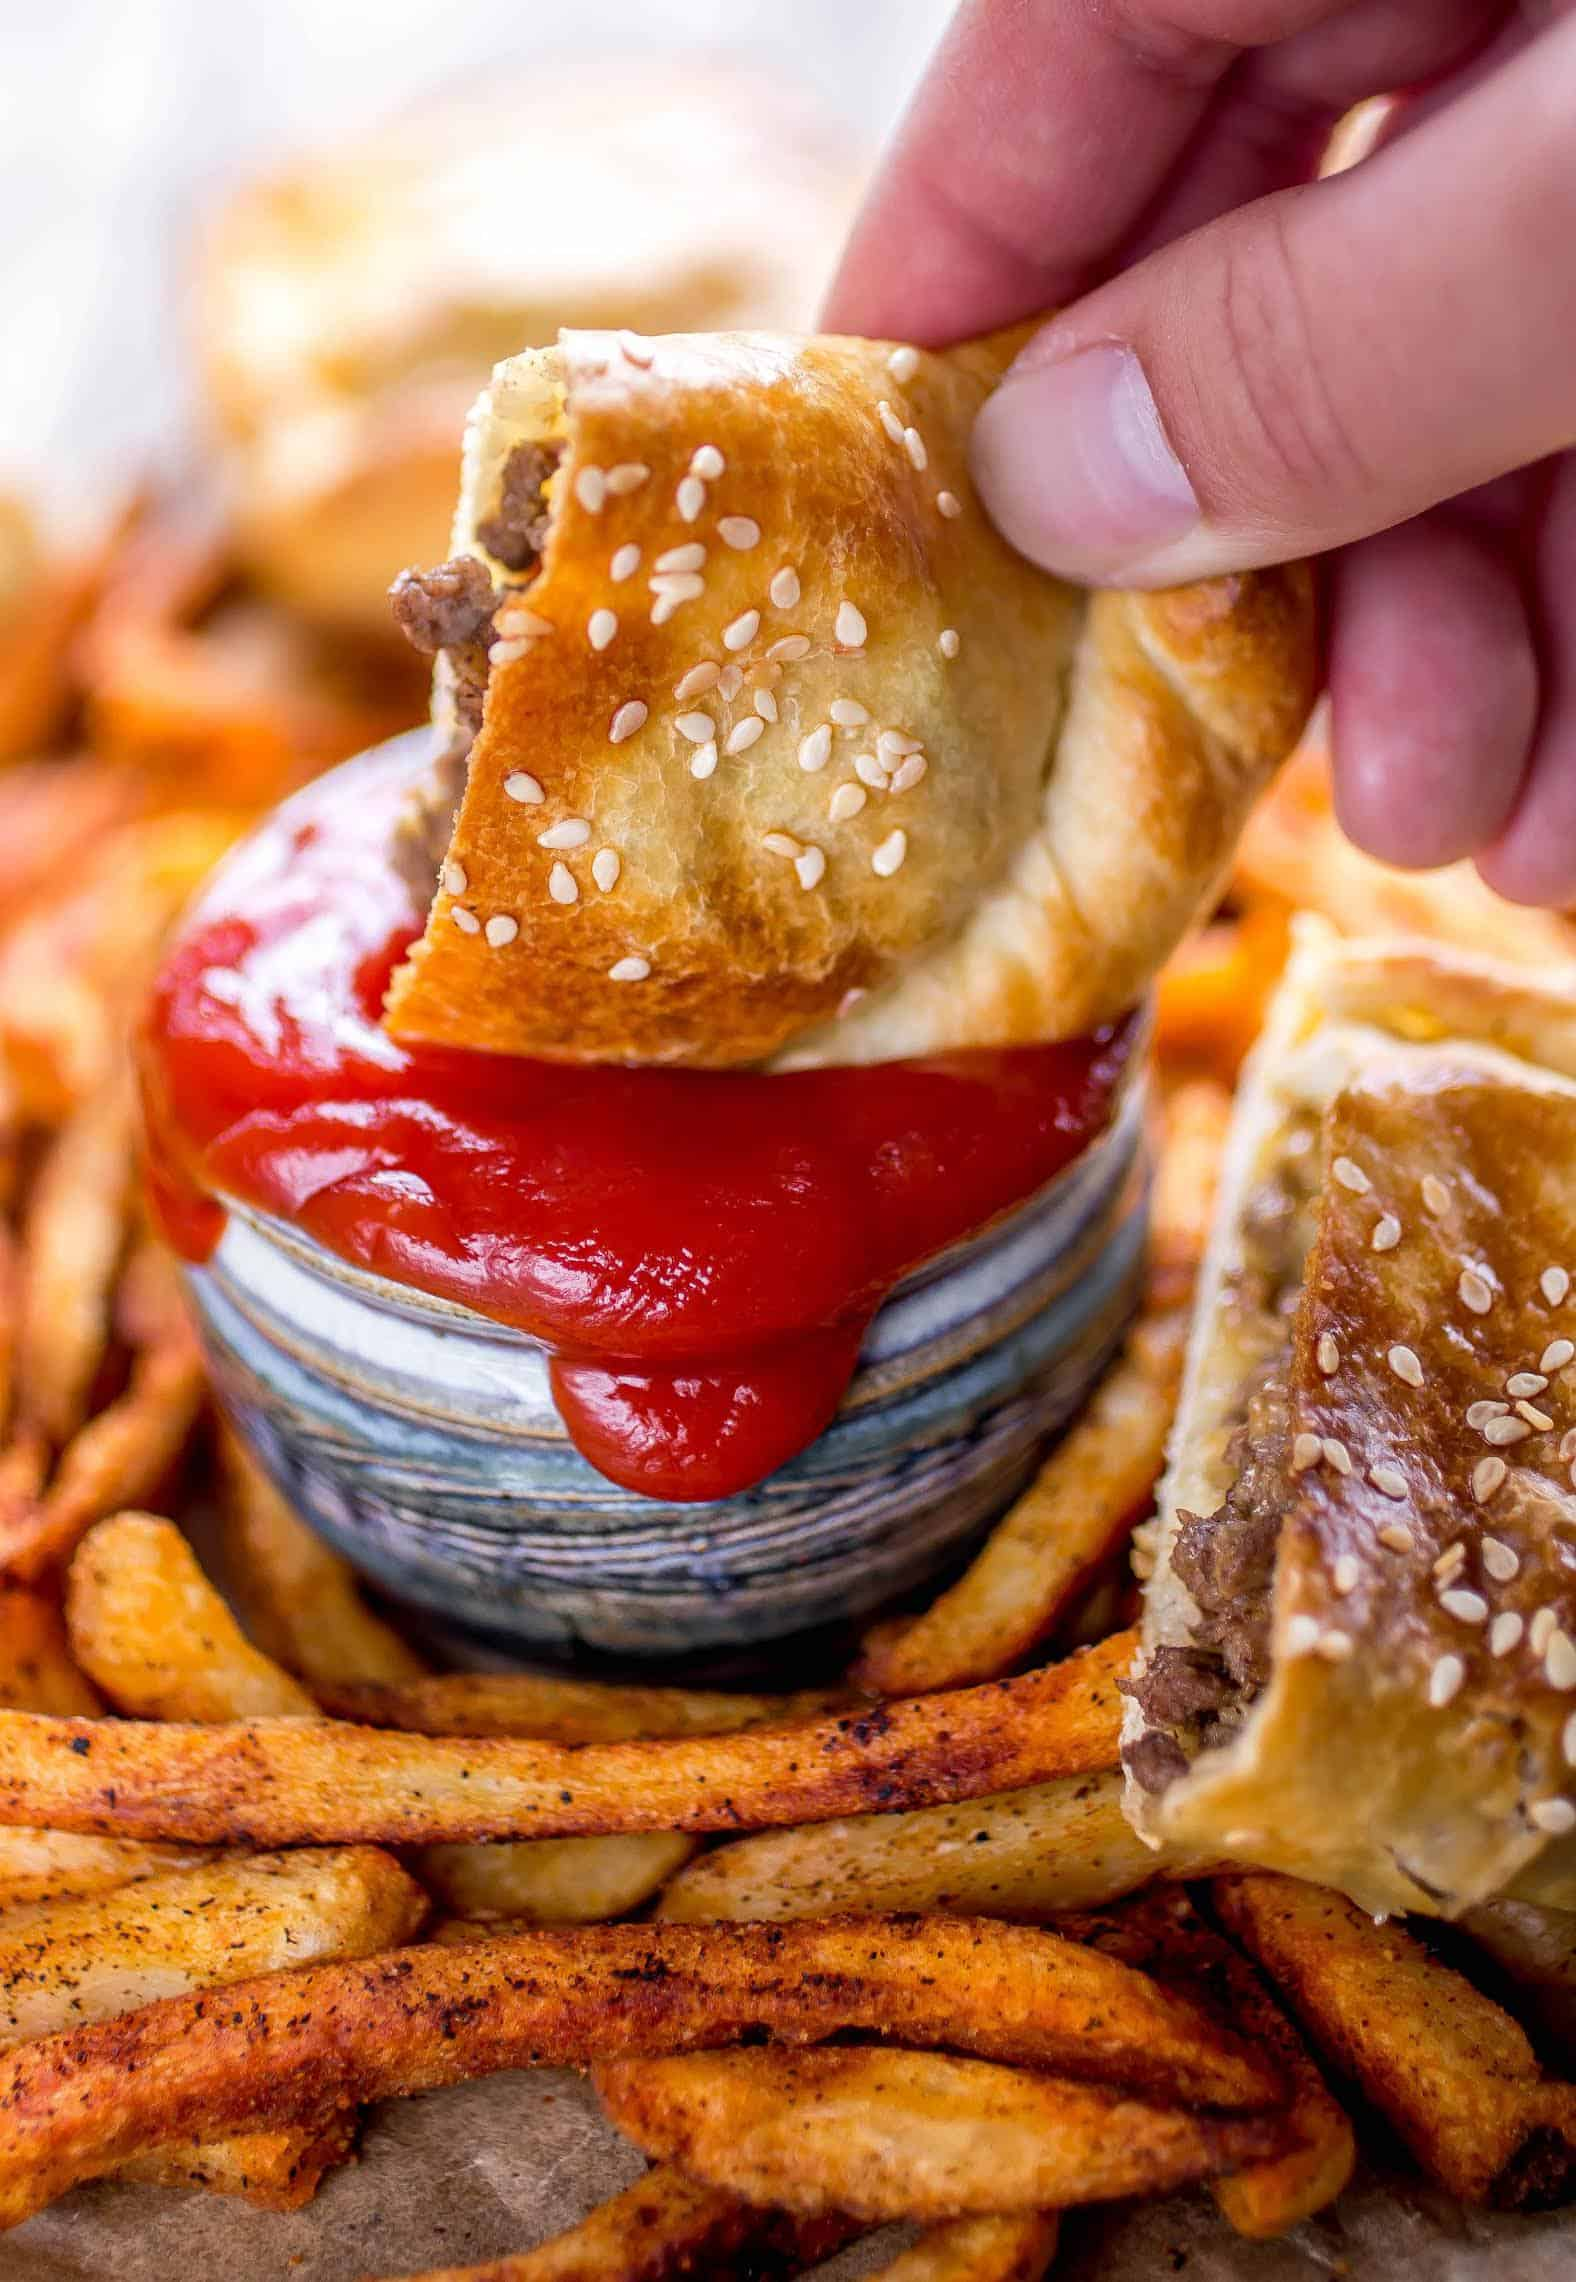 Bacon Cheeseburger Pockets - These cheeseburger pockets are such a fun twist on the traditional cheeseburger, using super delicious and flaky Wewalka puff pastry dough for the bread!